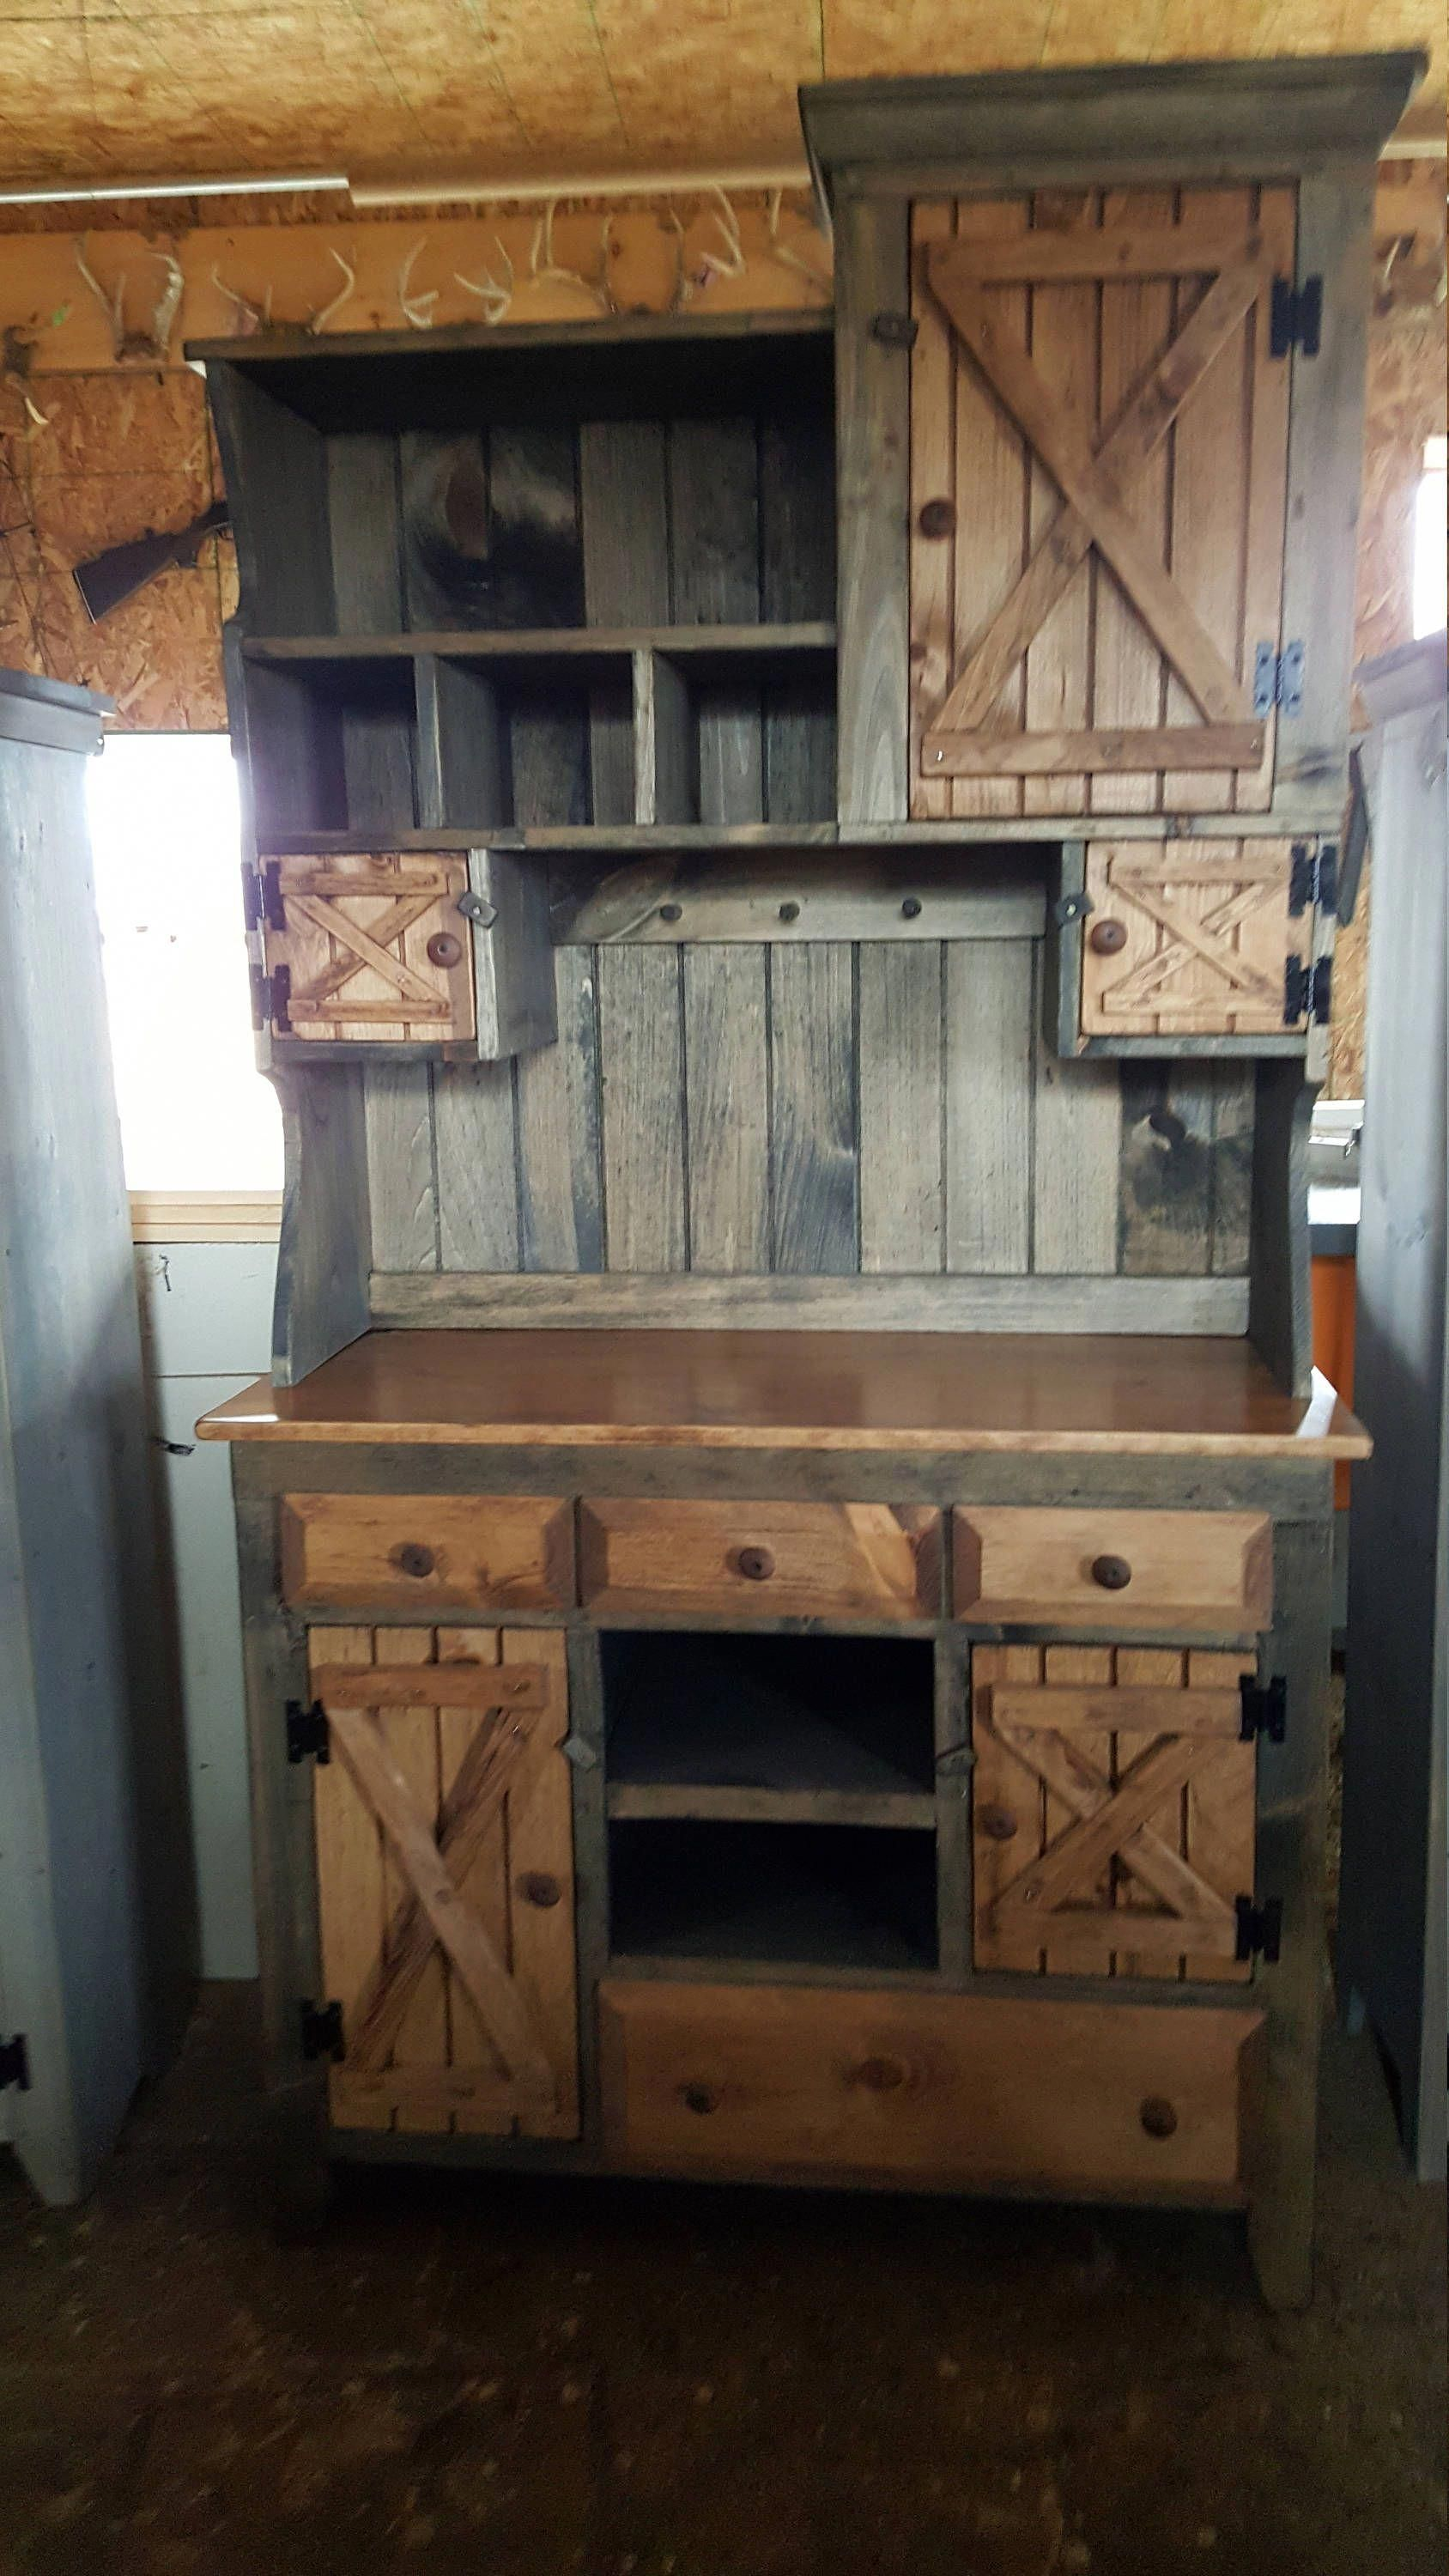 Step back primitive furniture / rustic farmhouse